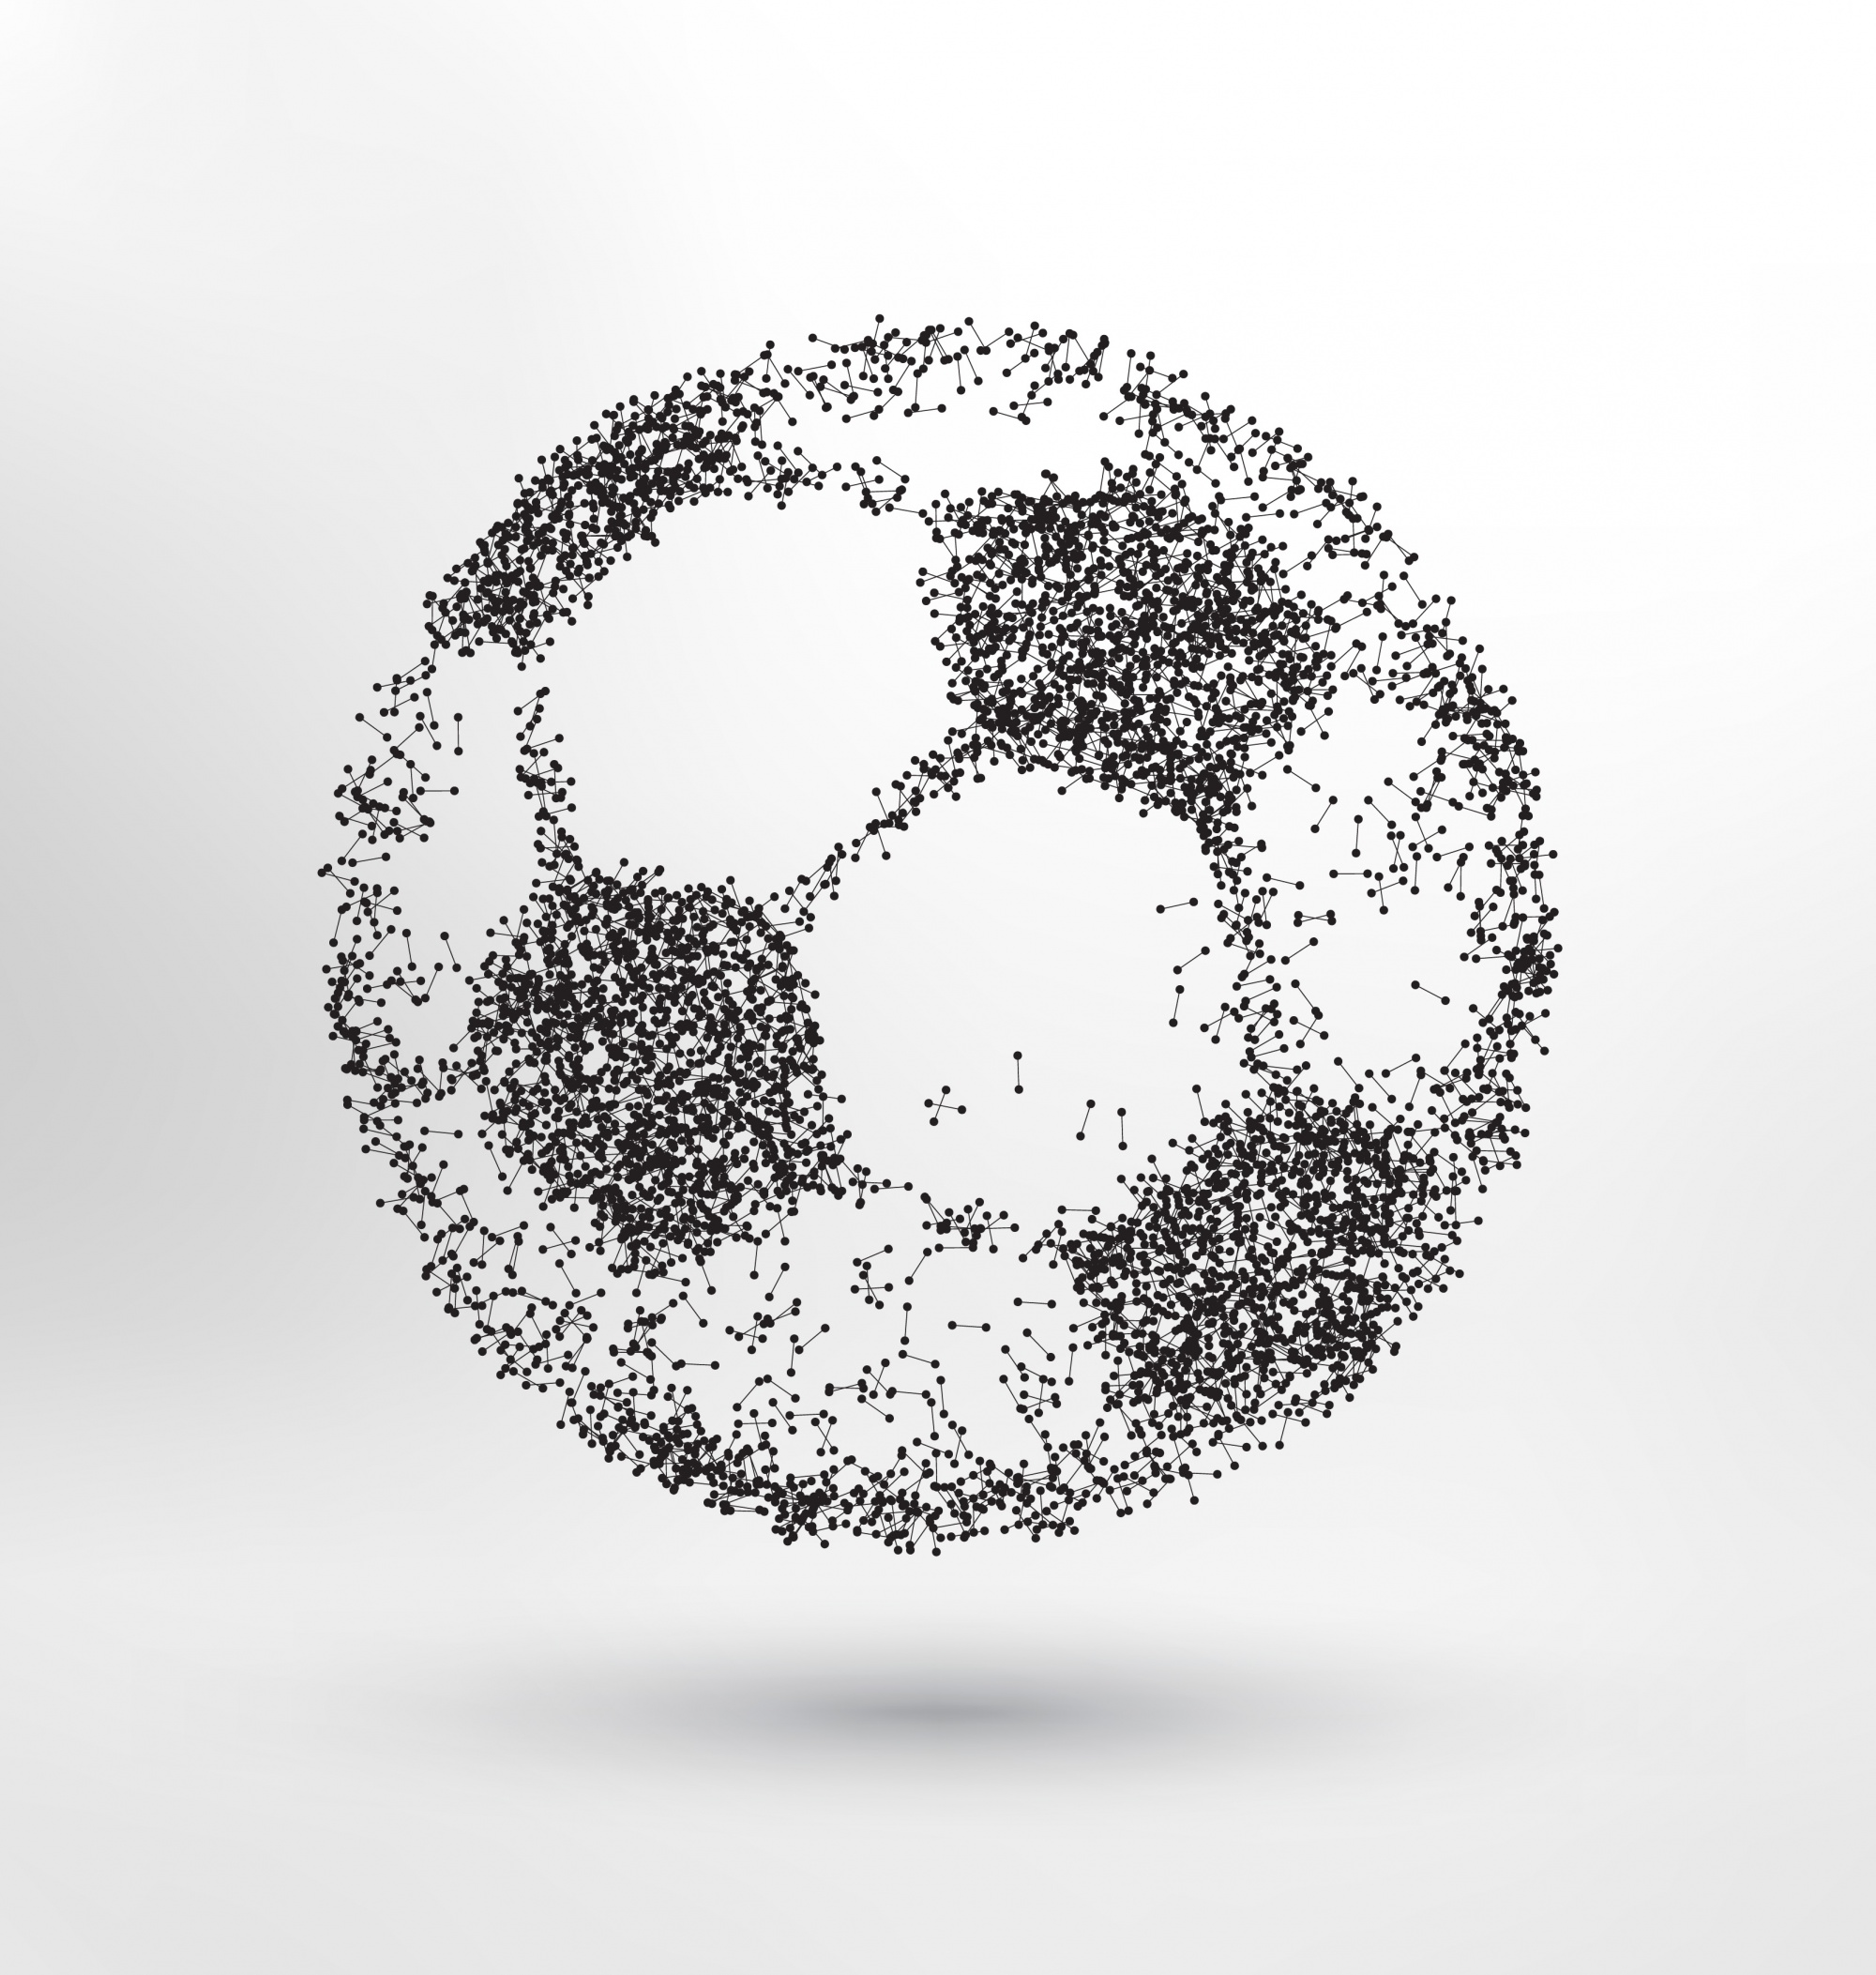 Abstracte voetbal